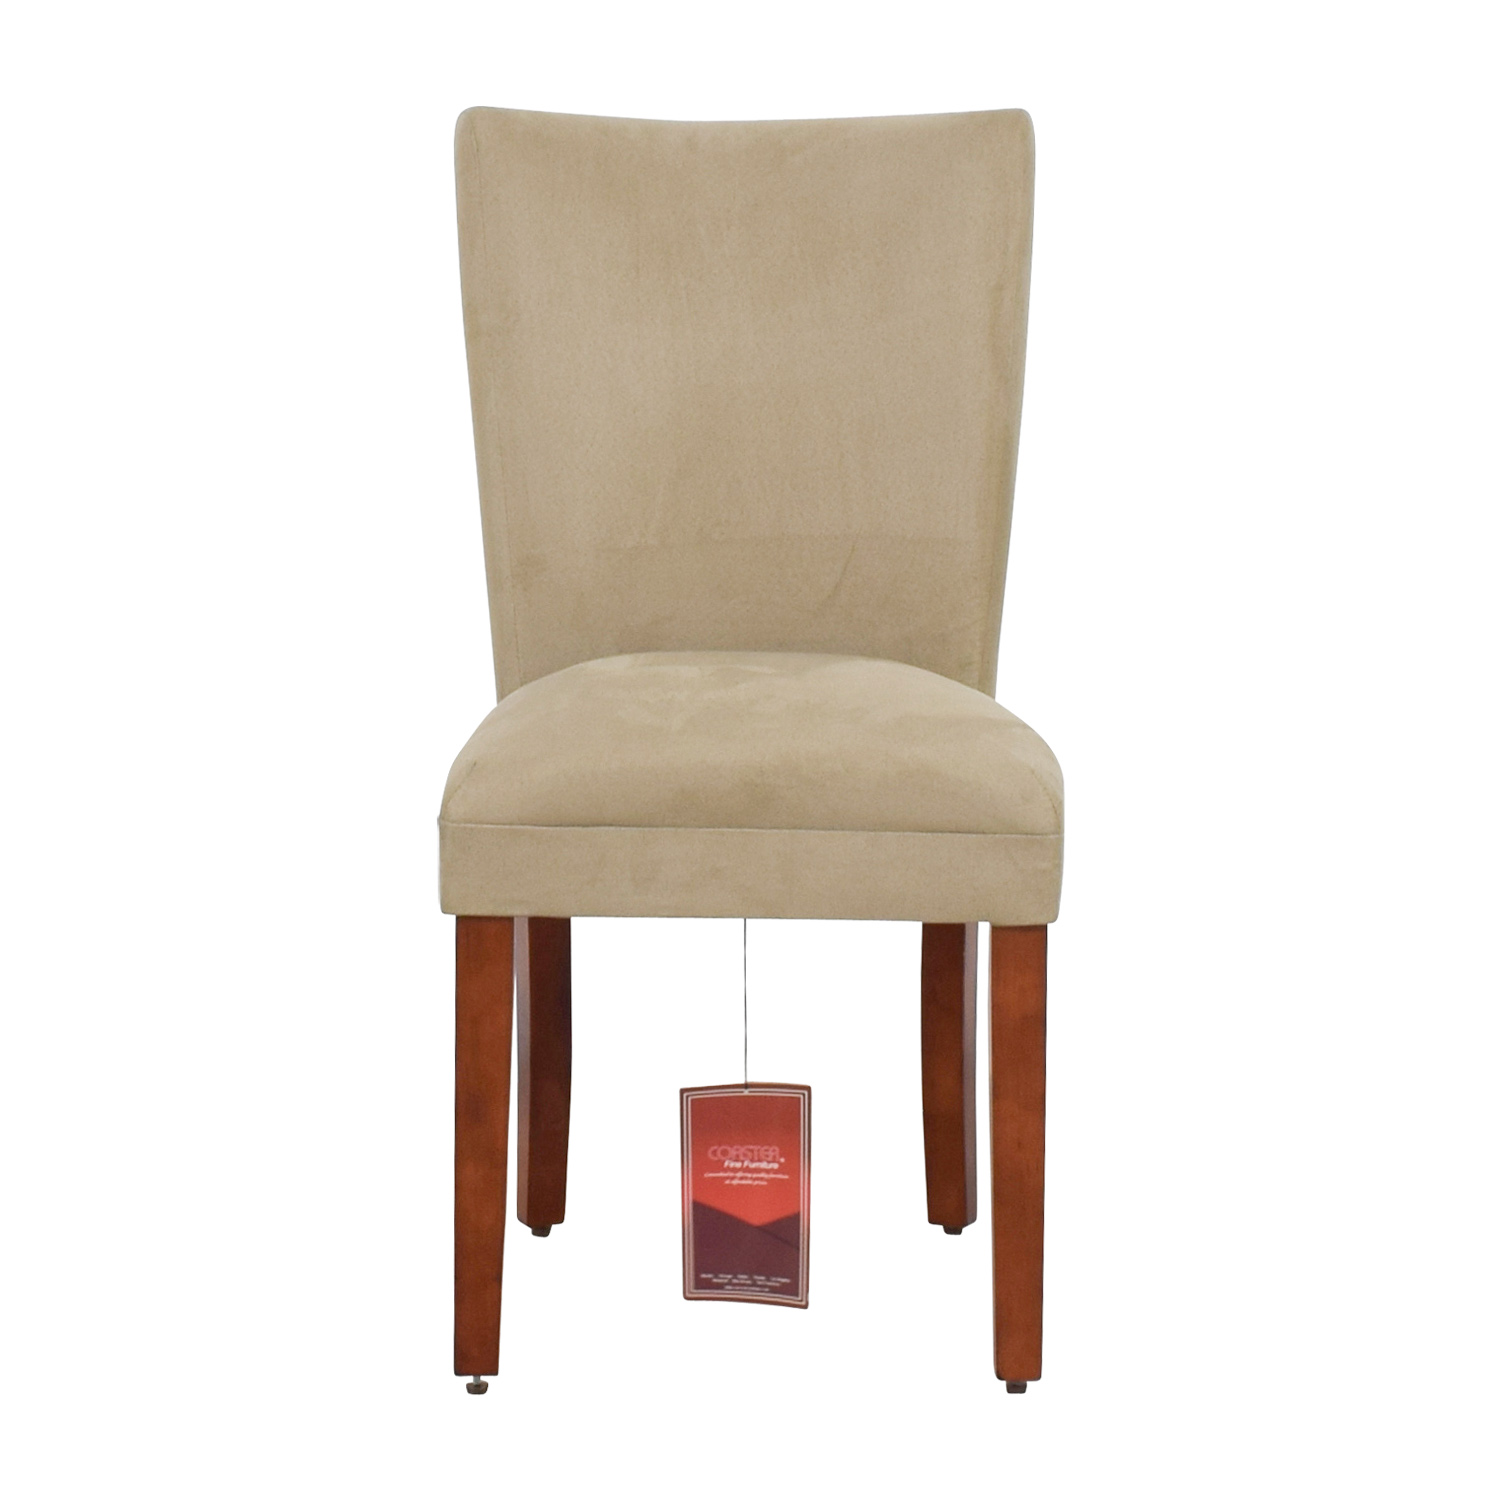 shop Coaster Coaster High Back Parsons Chair in Taupe Microfiber Fabric online